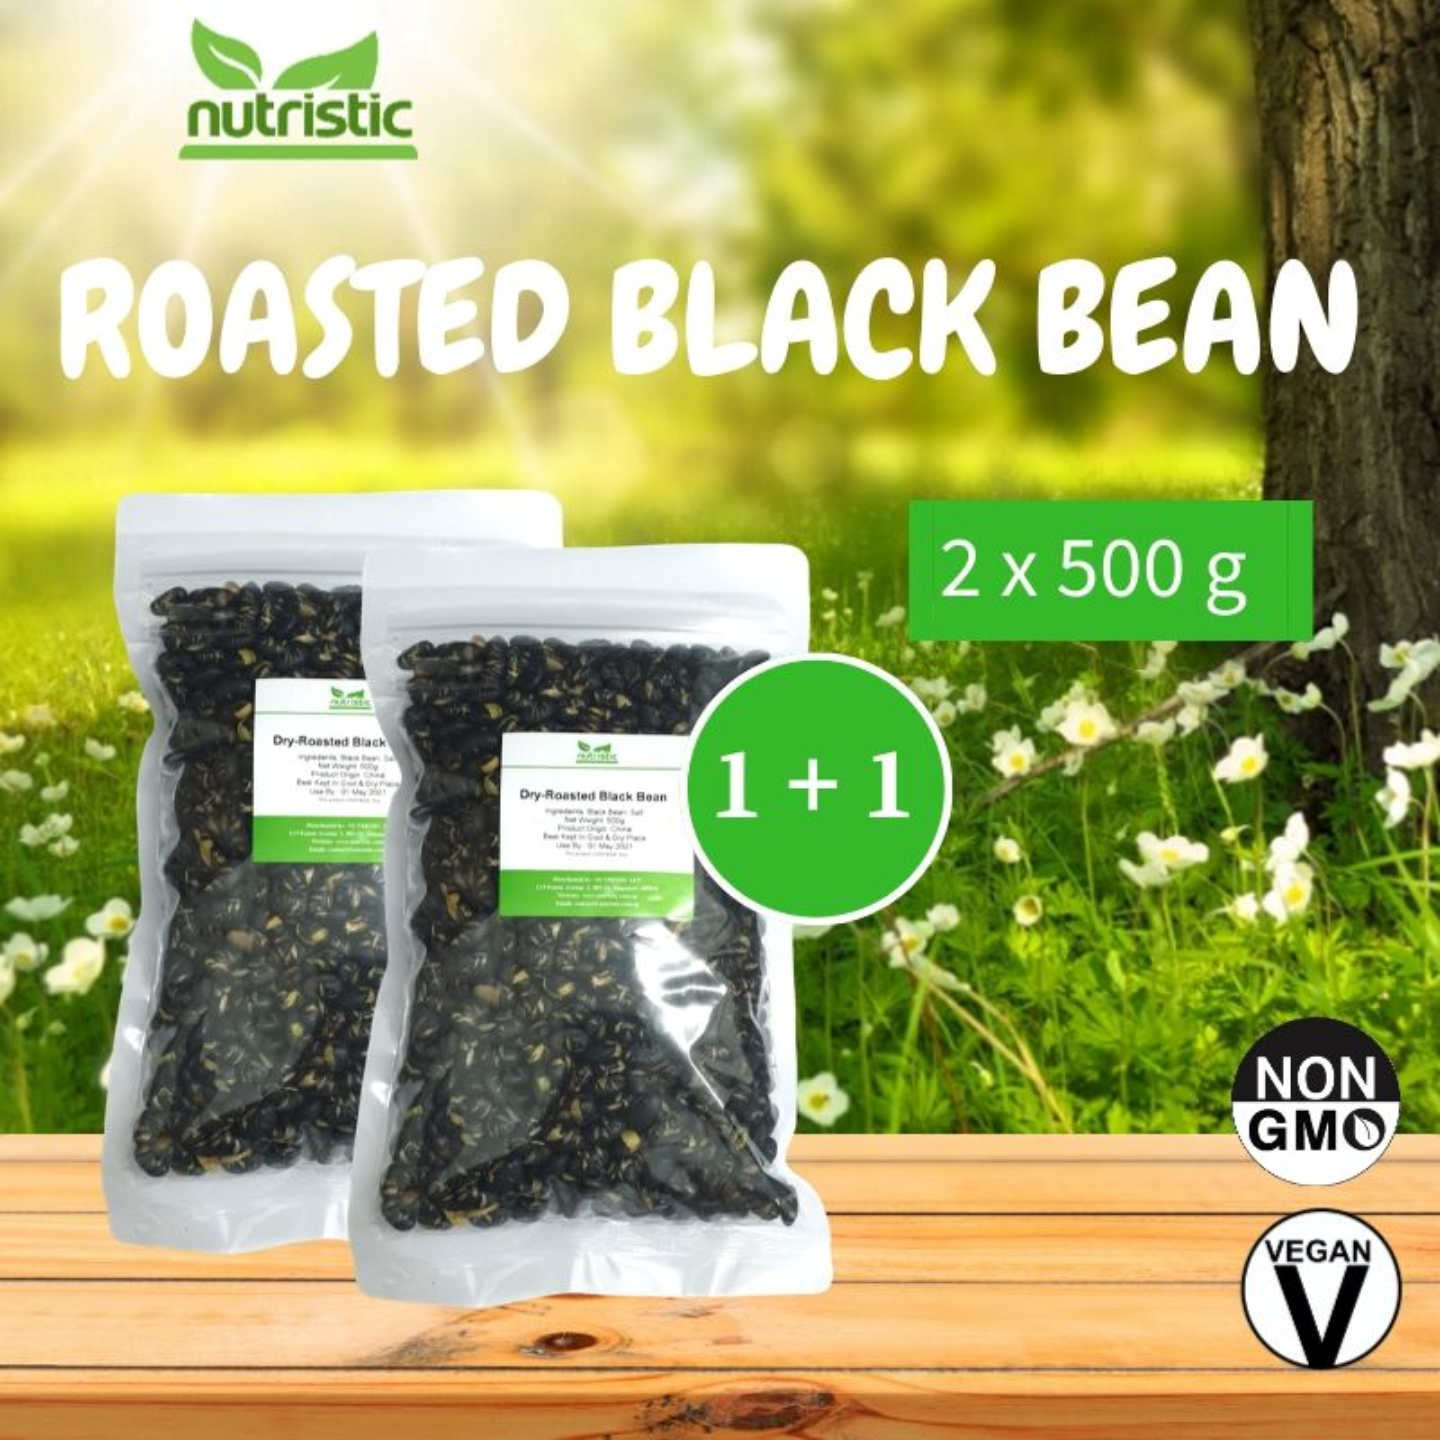 Dry-Roasted Black Beans [500g] x2 - Value Bundle 1+1